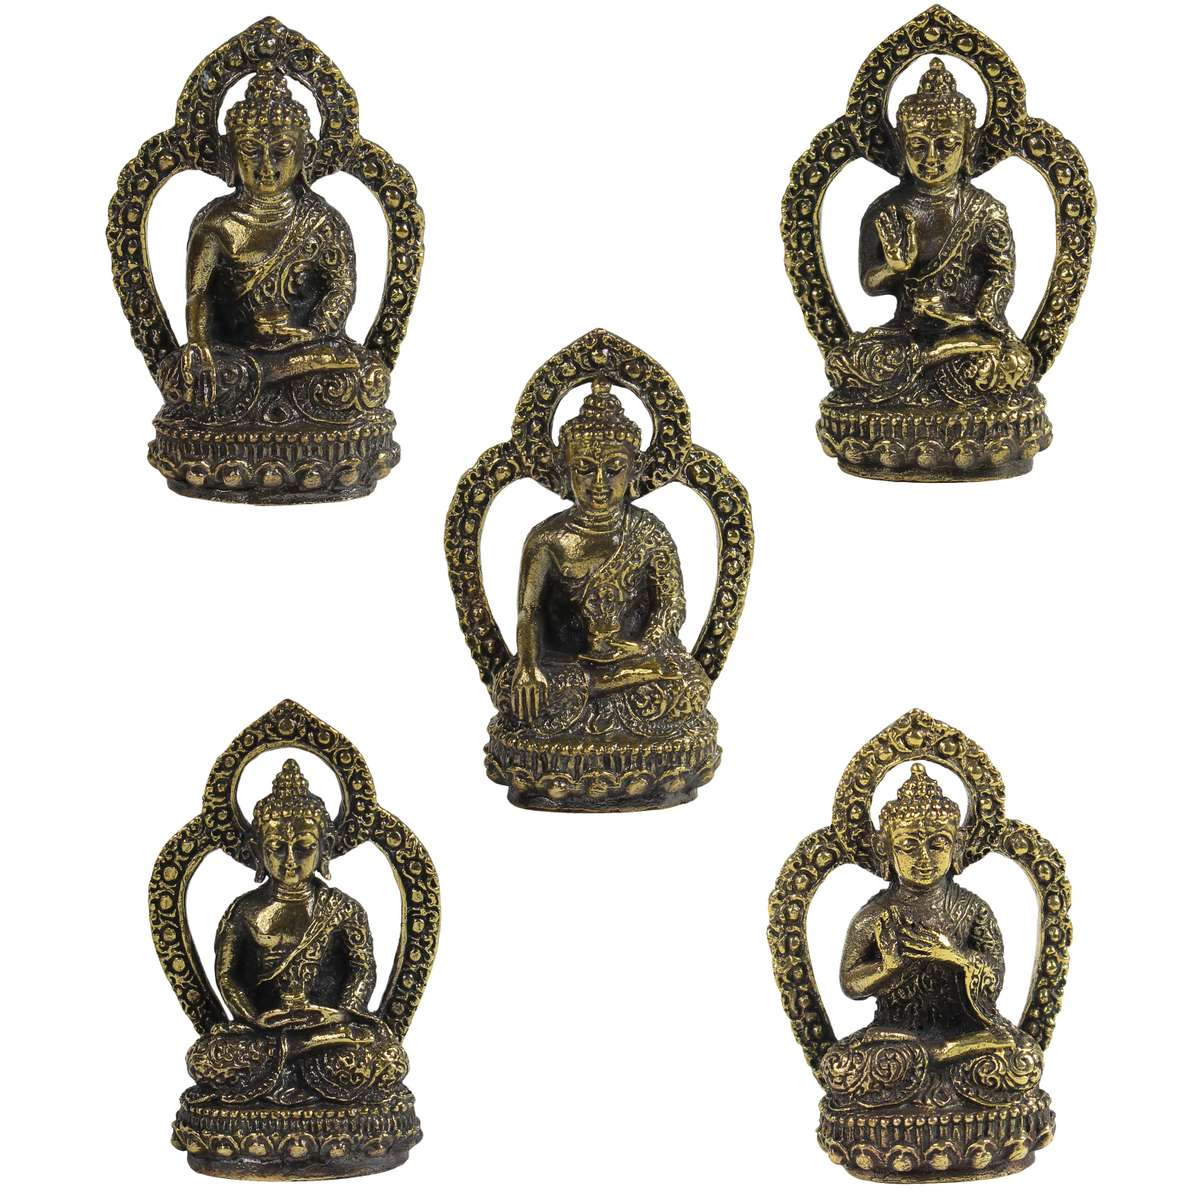 kleiner buddha messing figur messingbuddha messingfigur geschenk talisman gl cksbringer. Black Bedroom Furniture Sets. Home Design Ideas